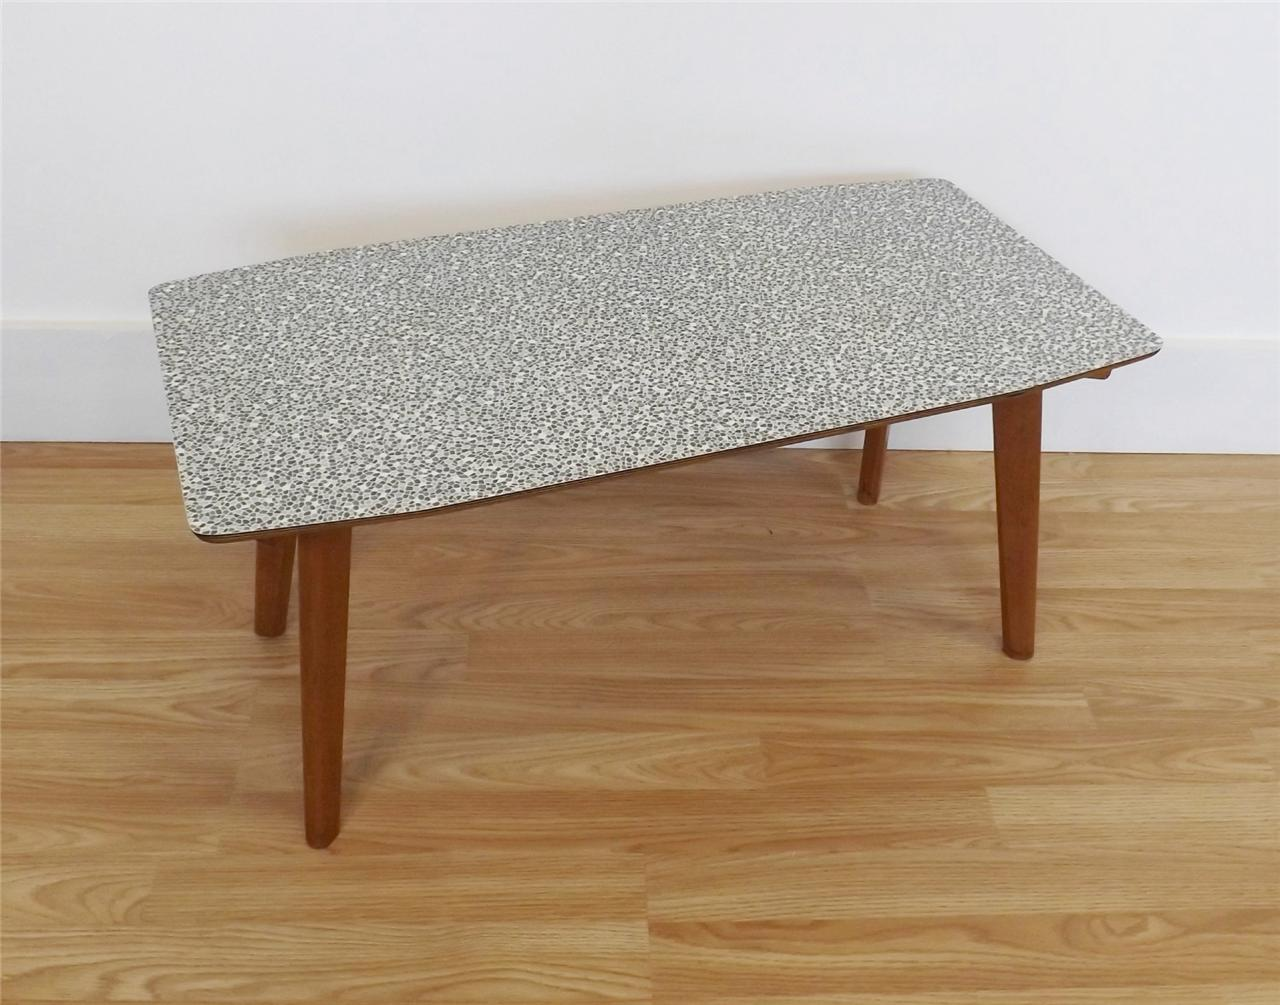 Formica coffee table retro vintage mid century atomic 50s 60s homestyle ebay Formica coffee table